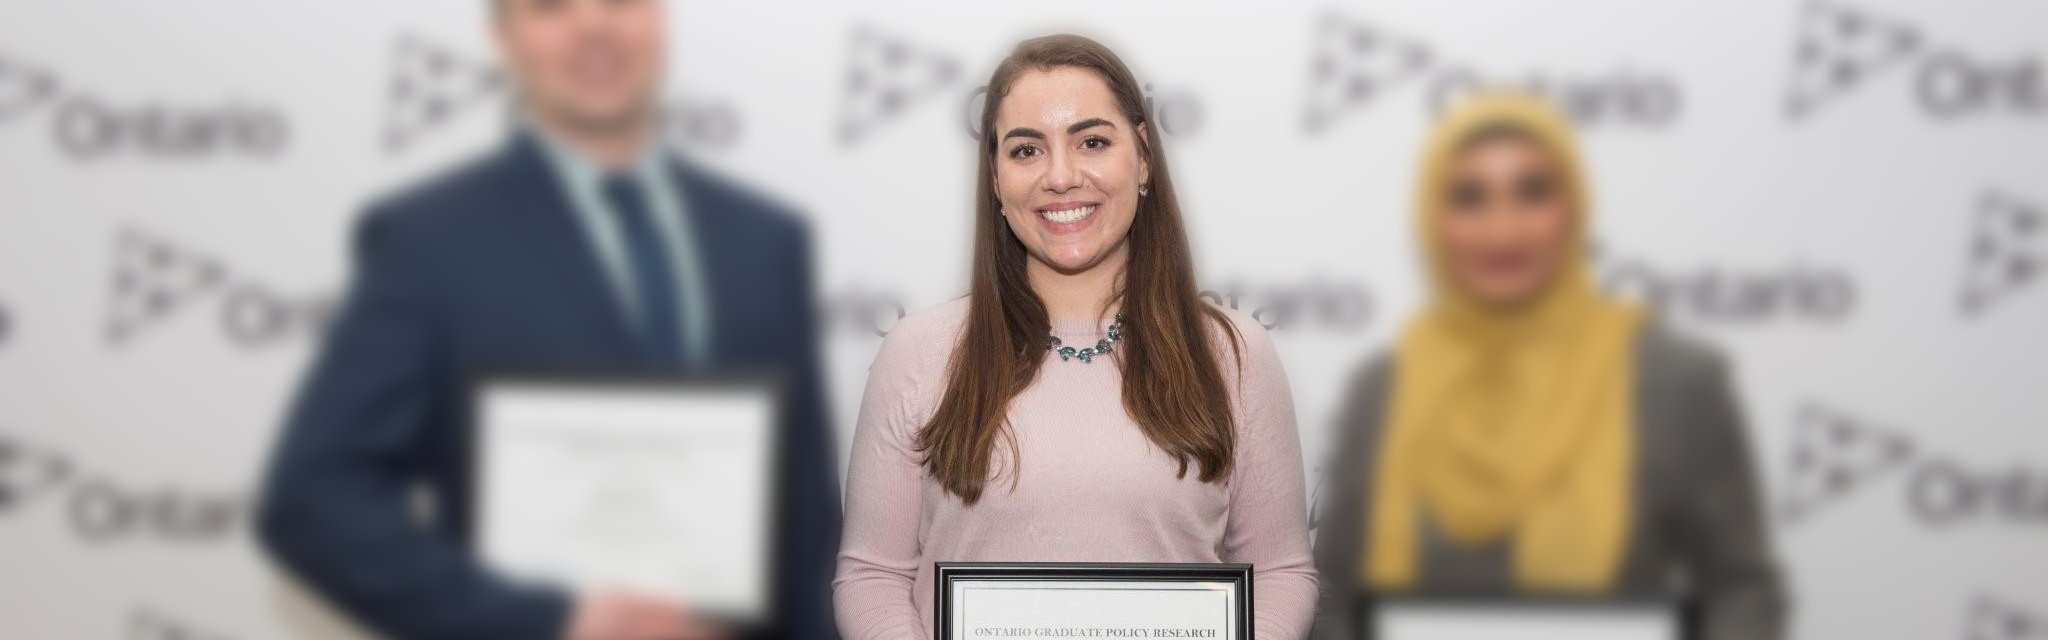 MA student receives  Ontario policy research award